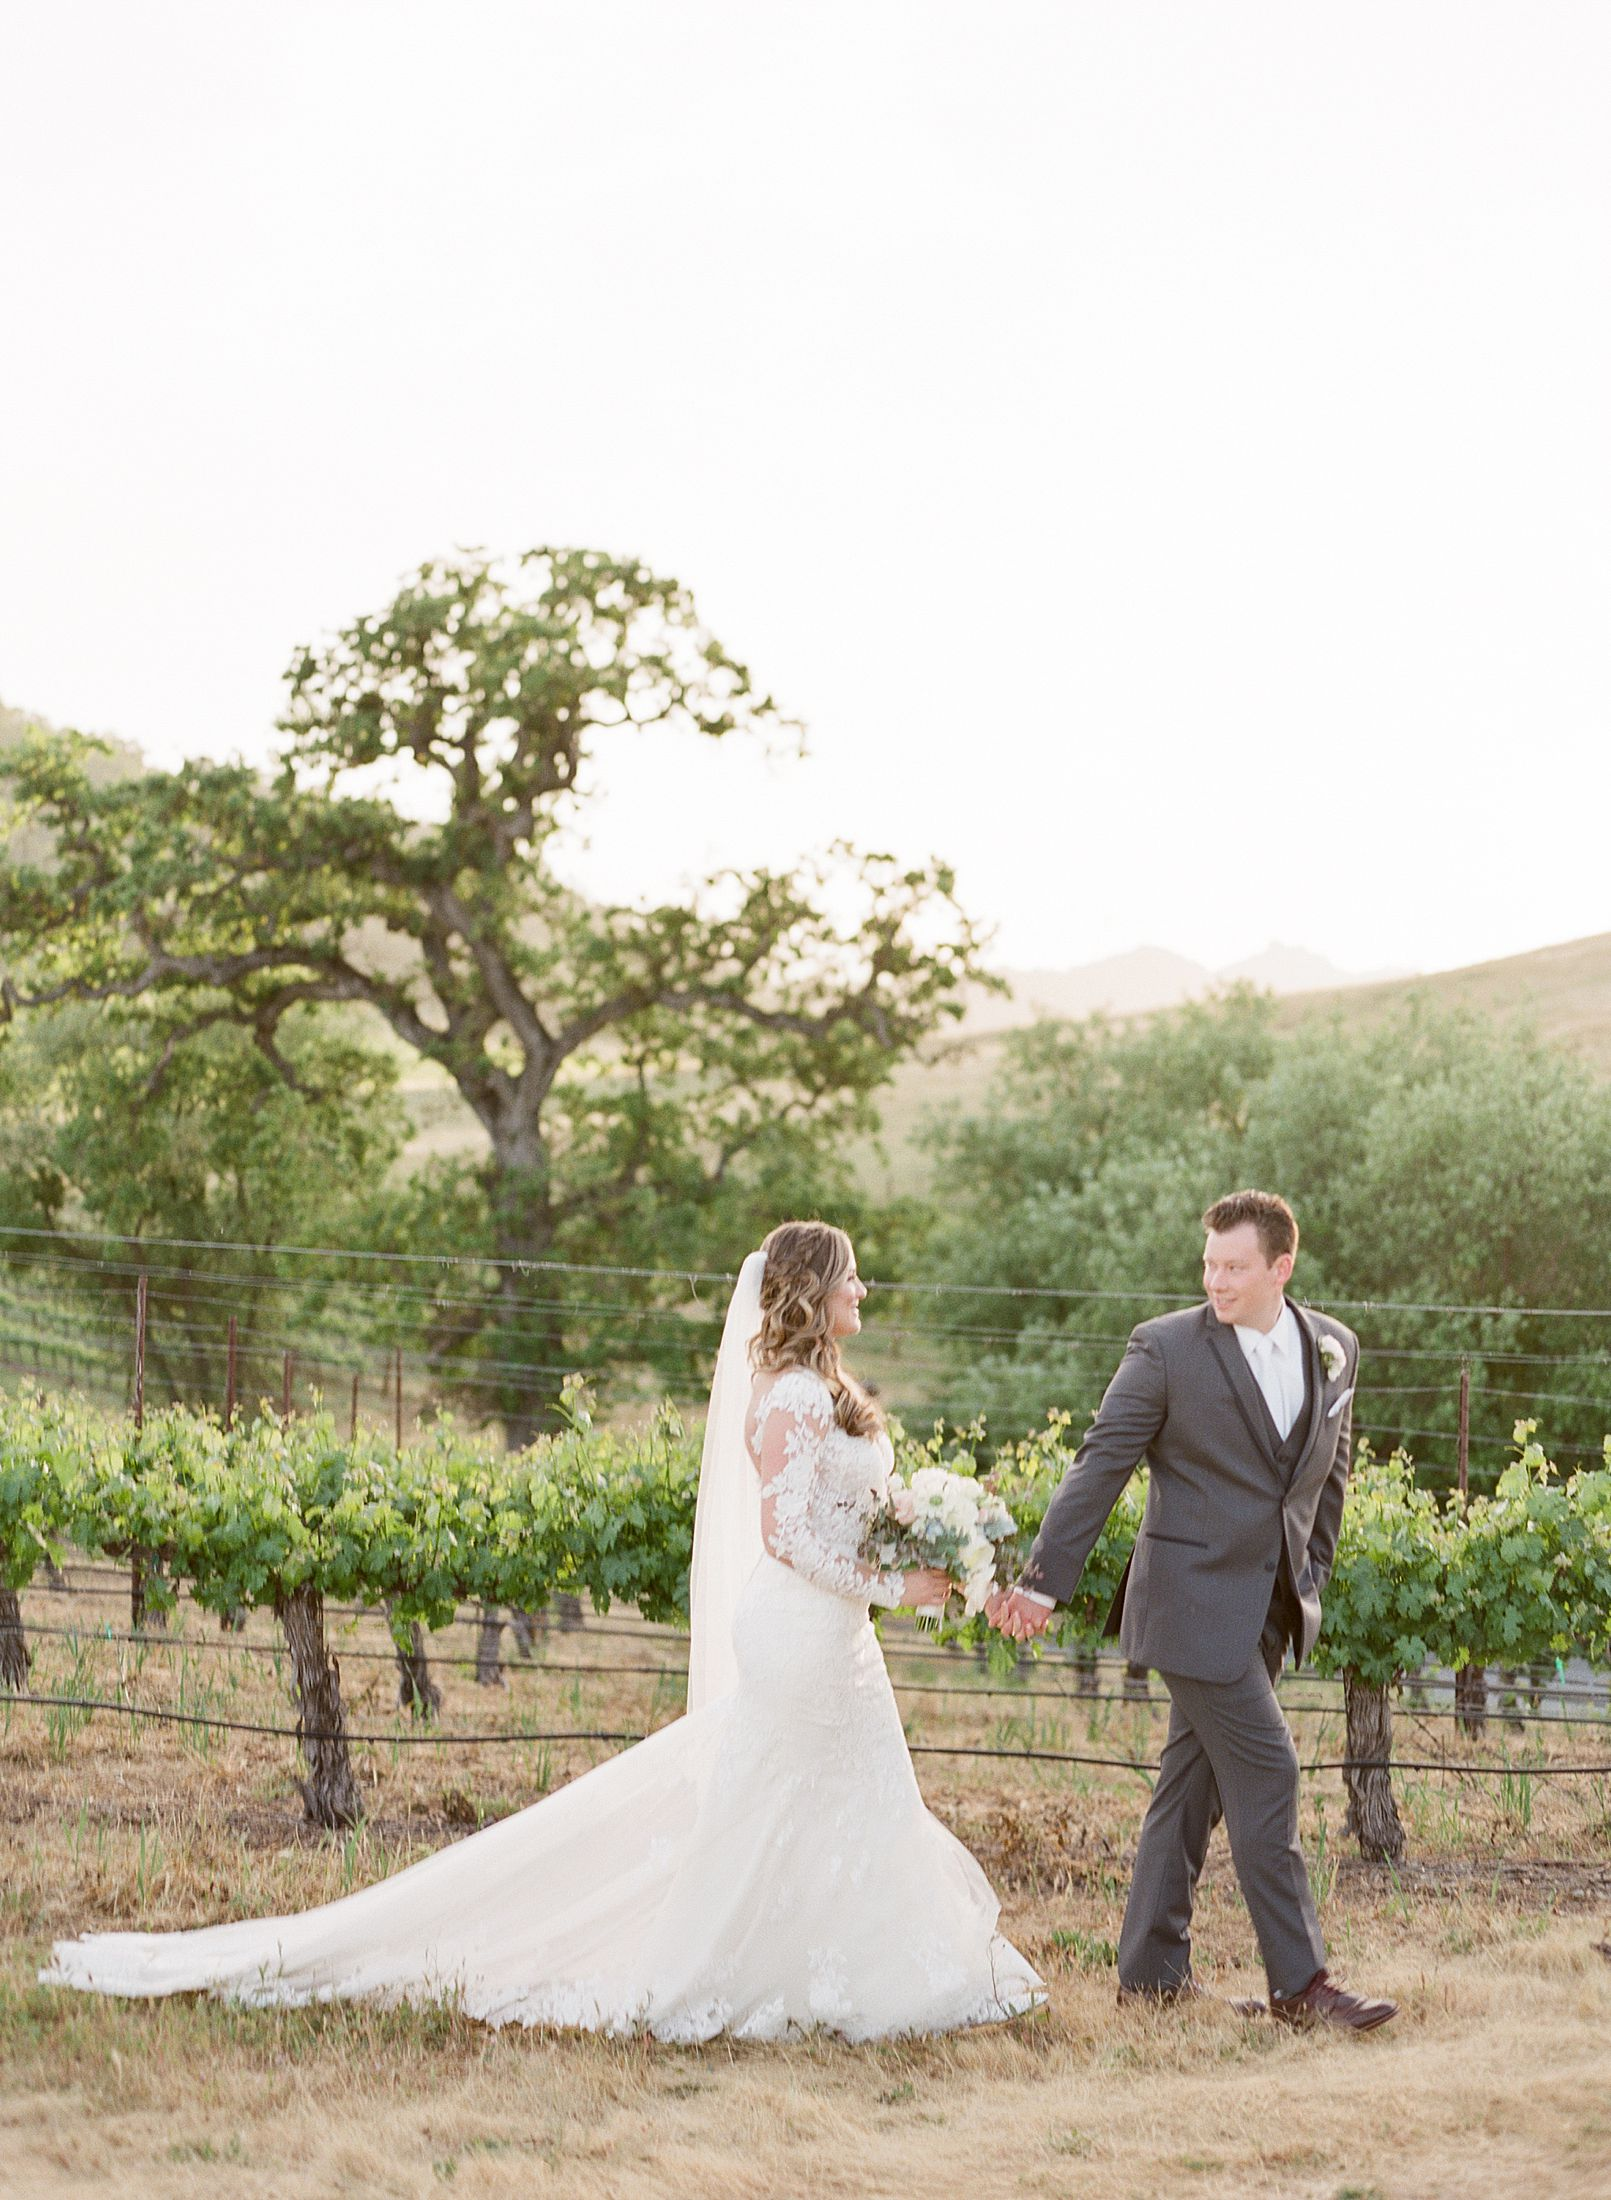 Clos LaChance Winery Wedding - Ashley Baumgartner - Kat & Kurt - Morgan Hill Wedding - Winery Wedding - Bay Area Photographer - Sacramento Wedding Photographer_0060.jpg